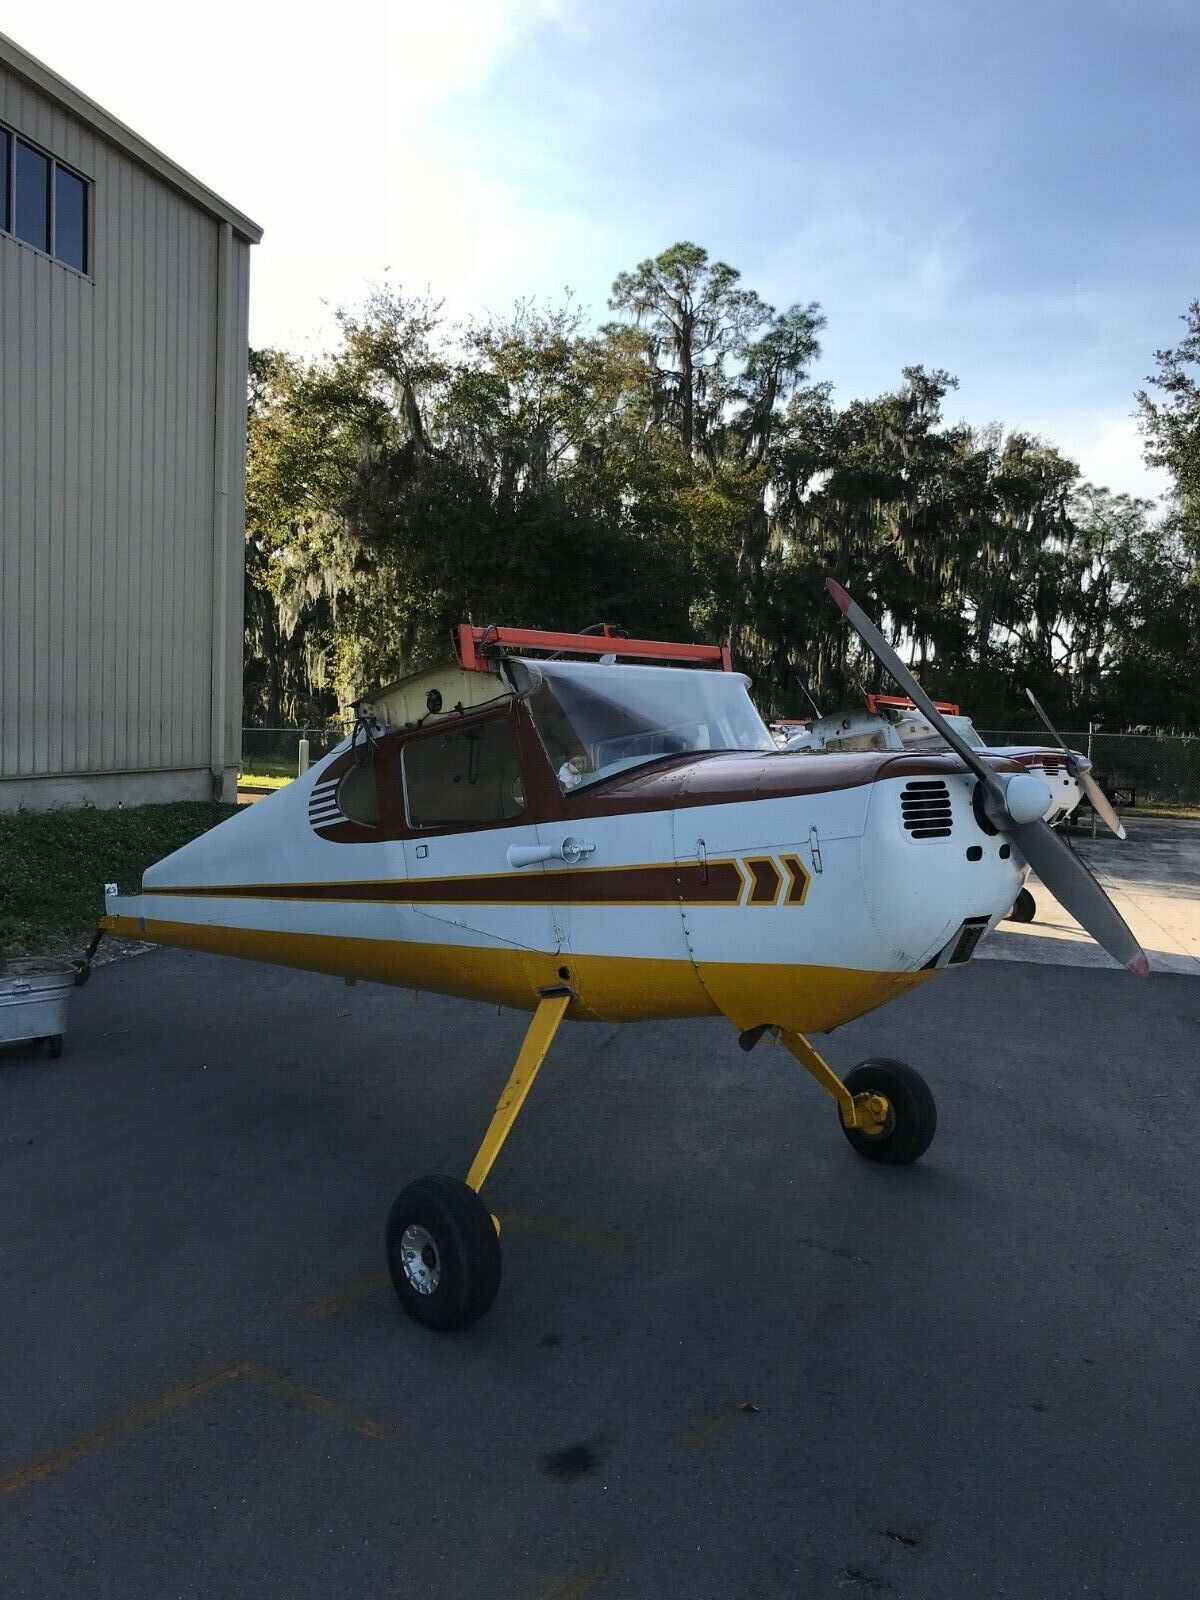 Project 1946 Cessna 120 aircraft